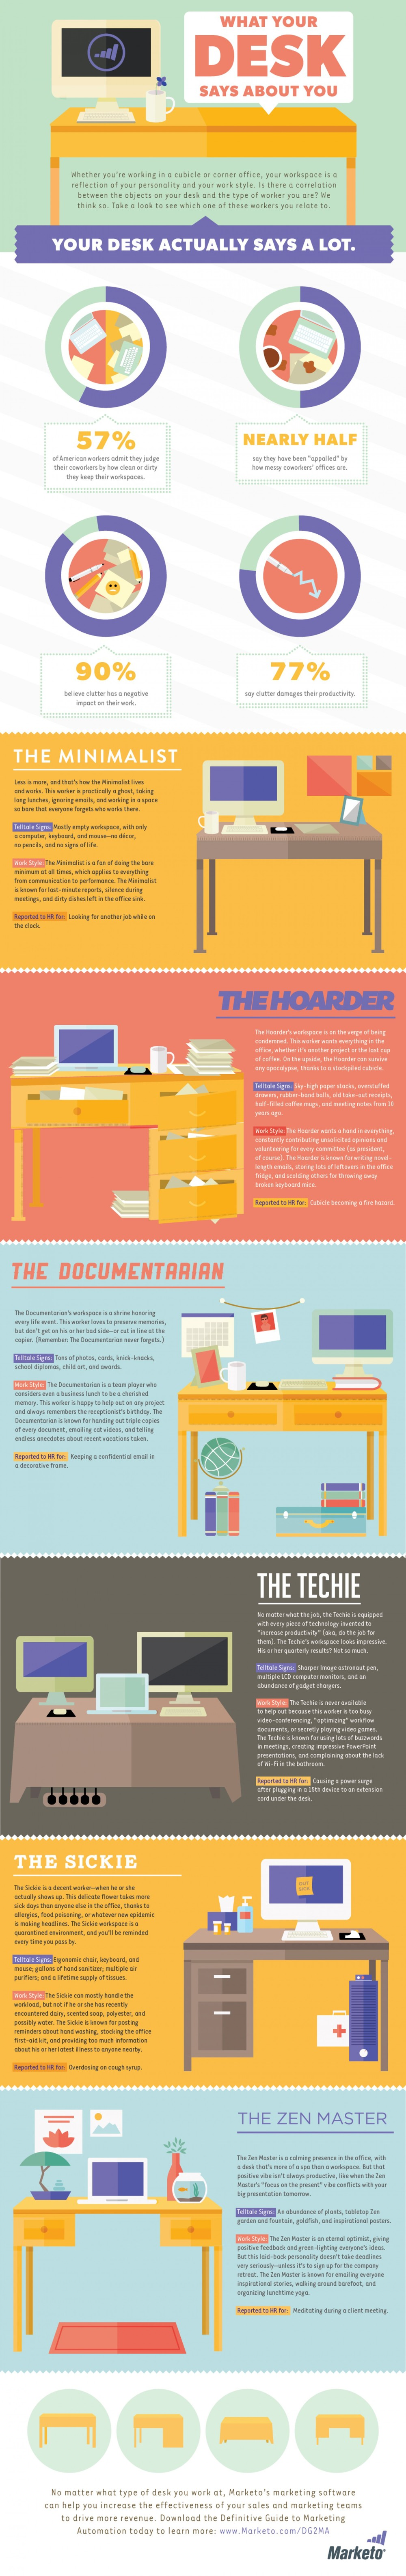 From http://blog.marketo.com/2013/07/what-your-desk-says-about-you-infographic.html